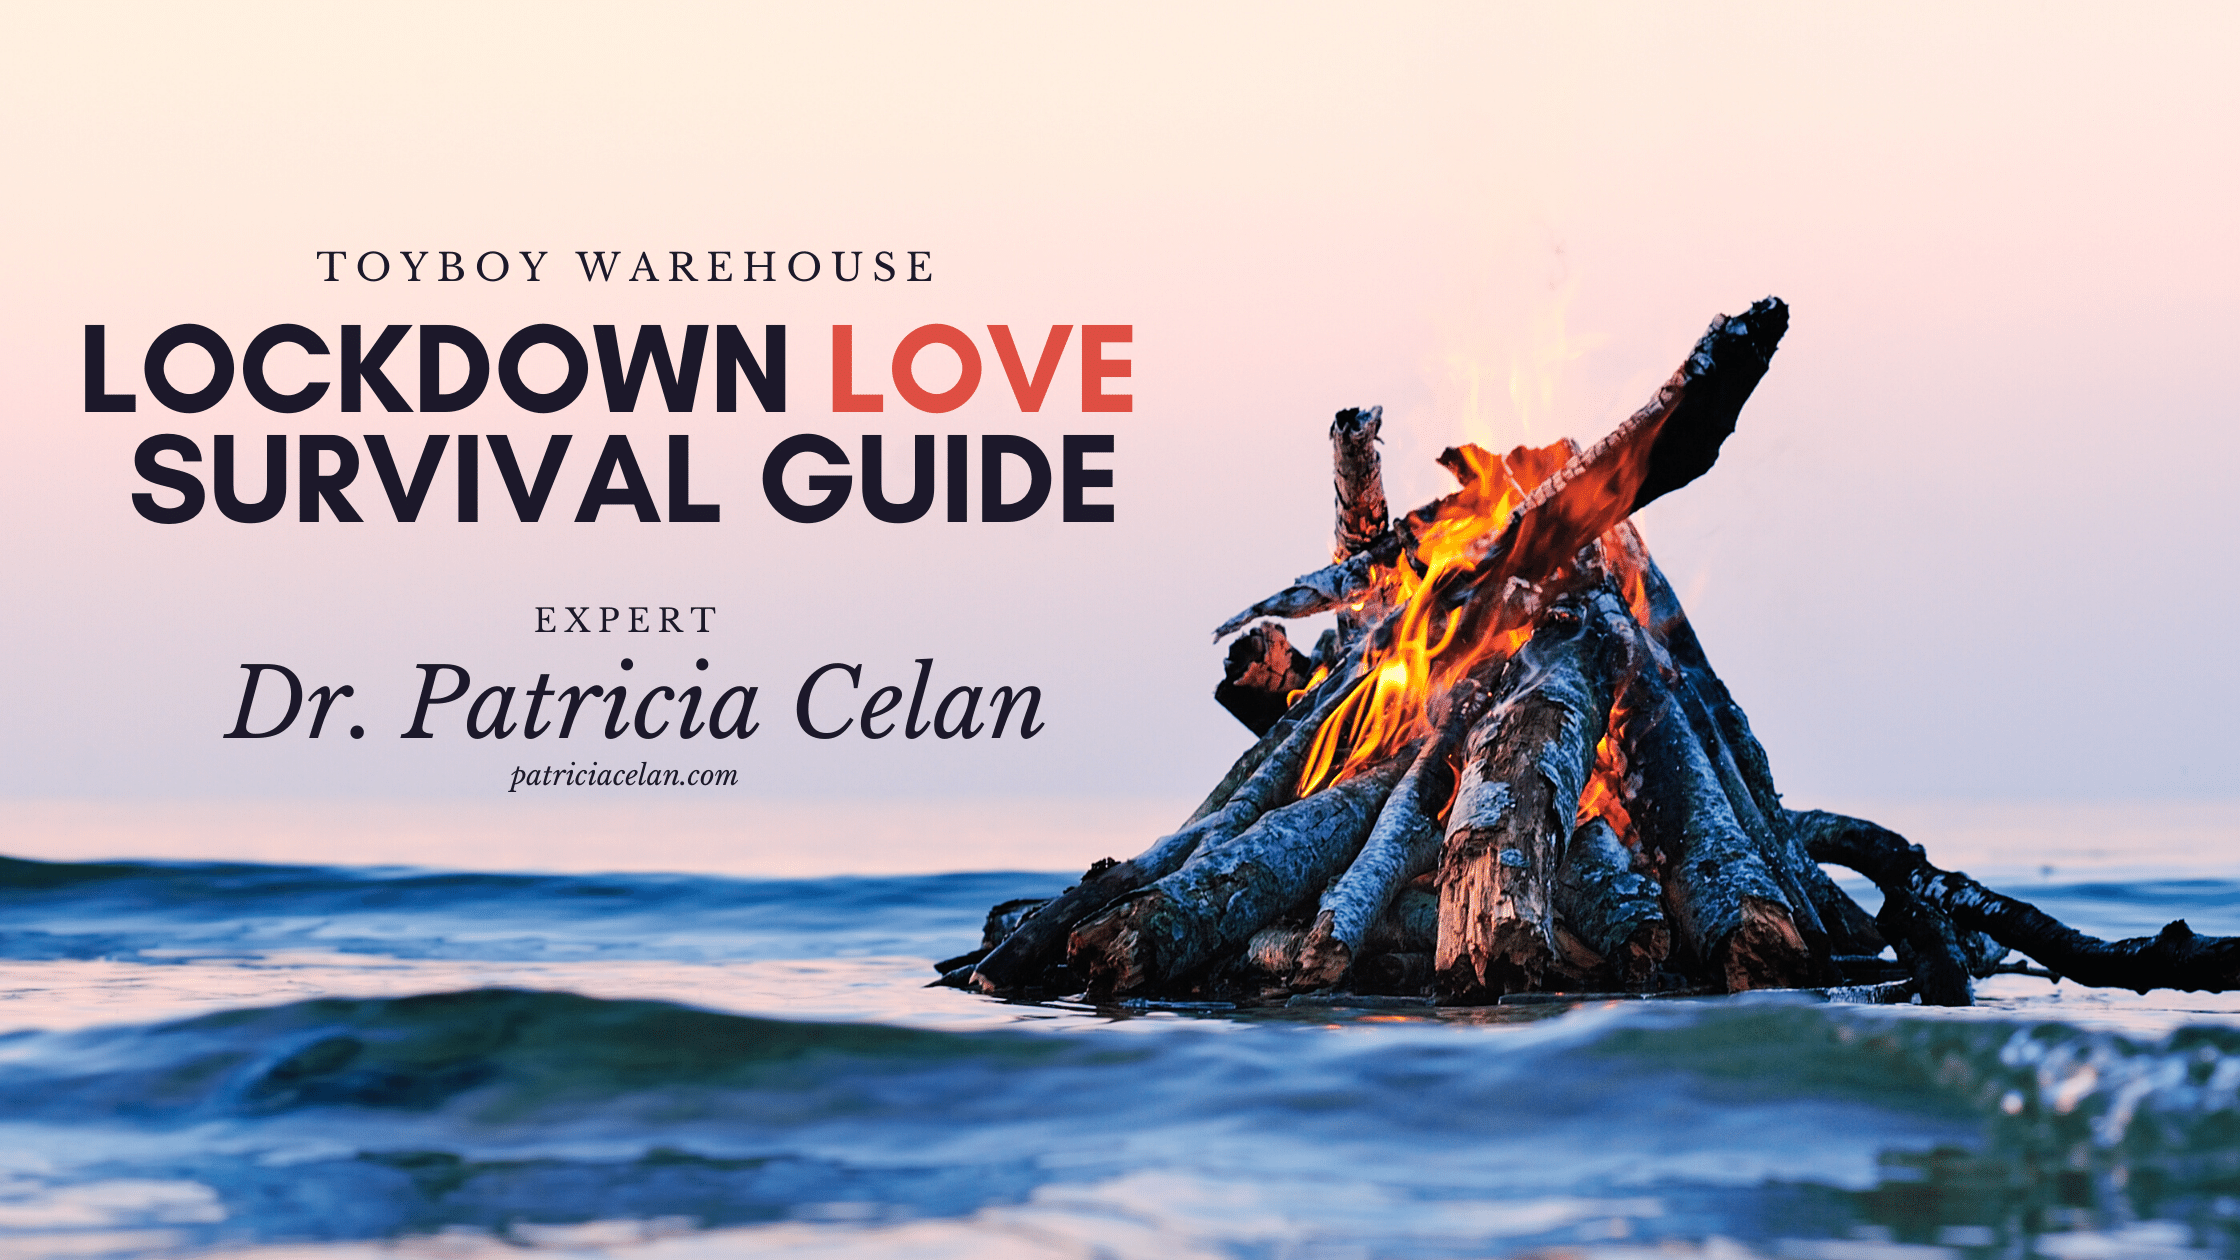 Lockdown Love Survival Guide – Expert: Dr. Patricia Celan